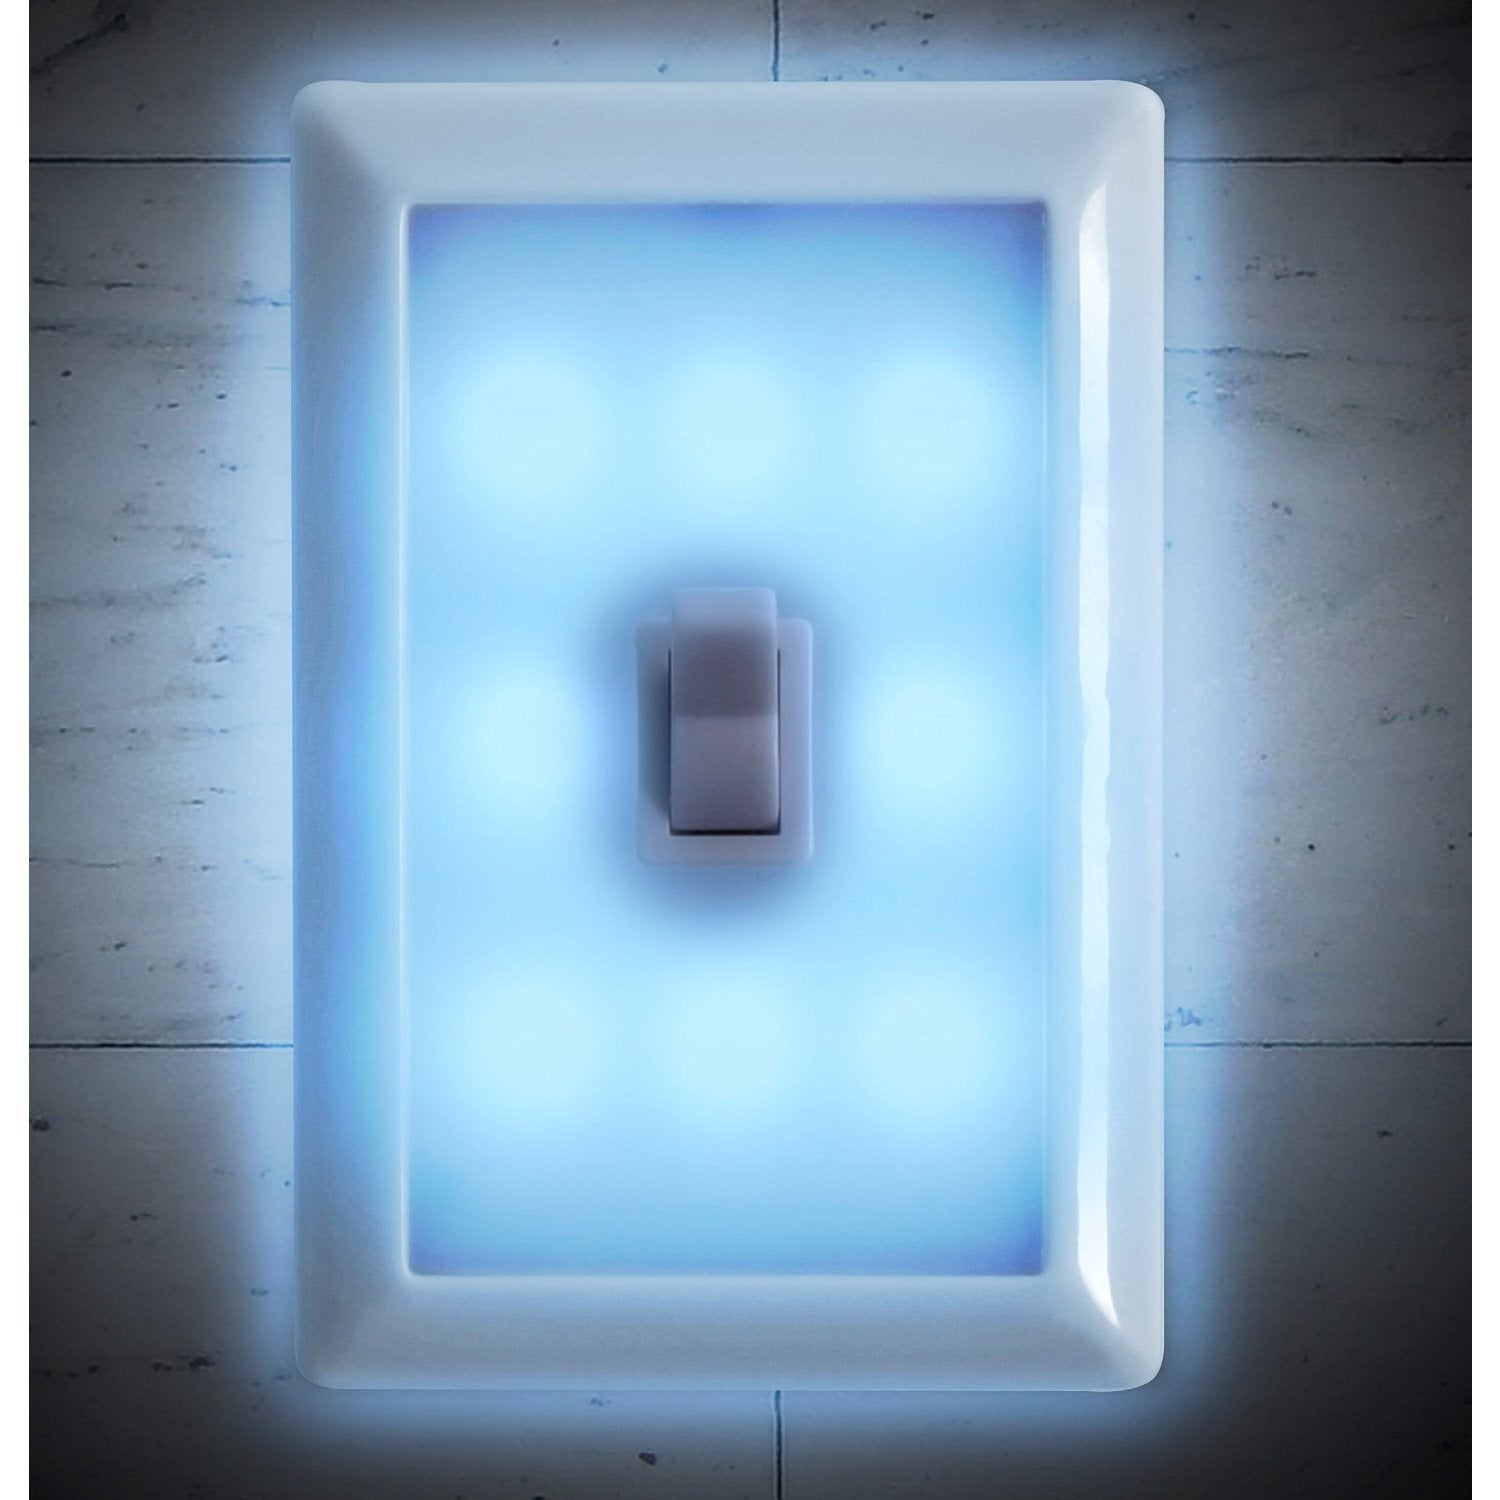 TechTools 8 LEDs Battery Operated Night Light Wall Switch...